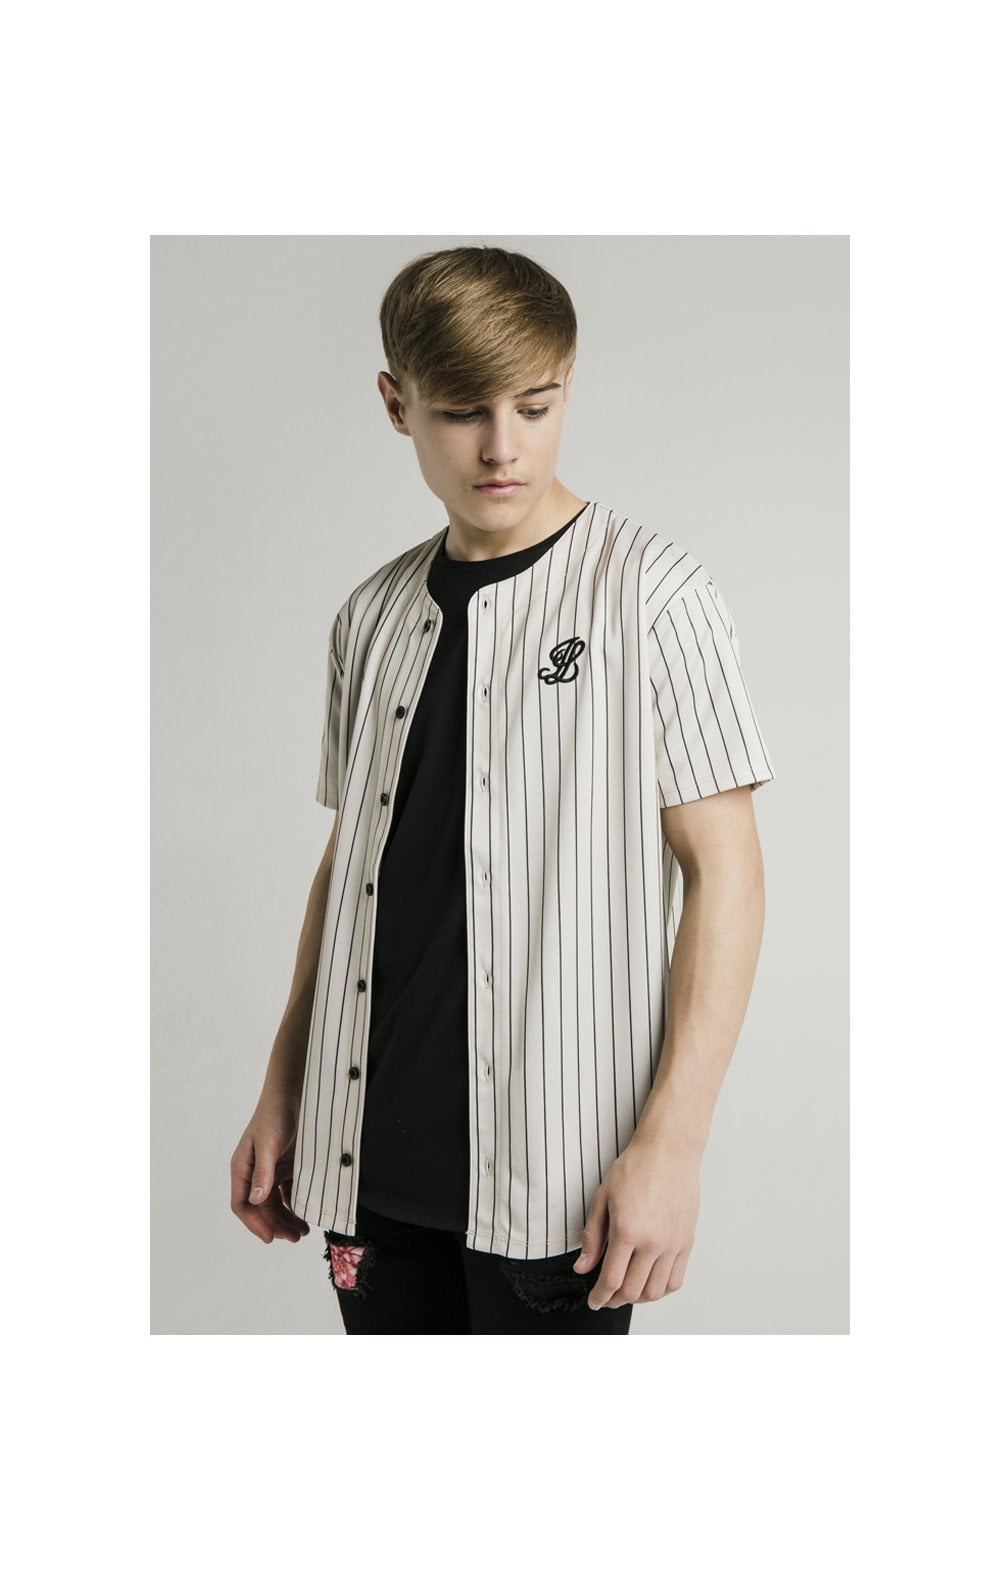 Illusive London Baseball Jersey - Ecru (1)